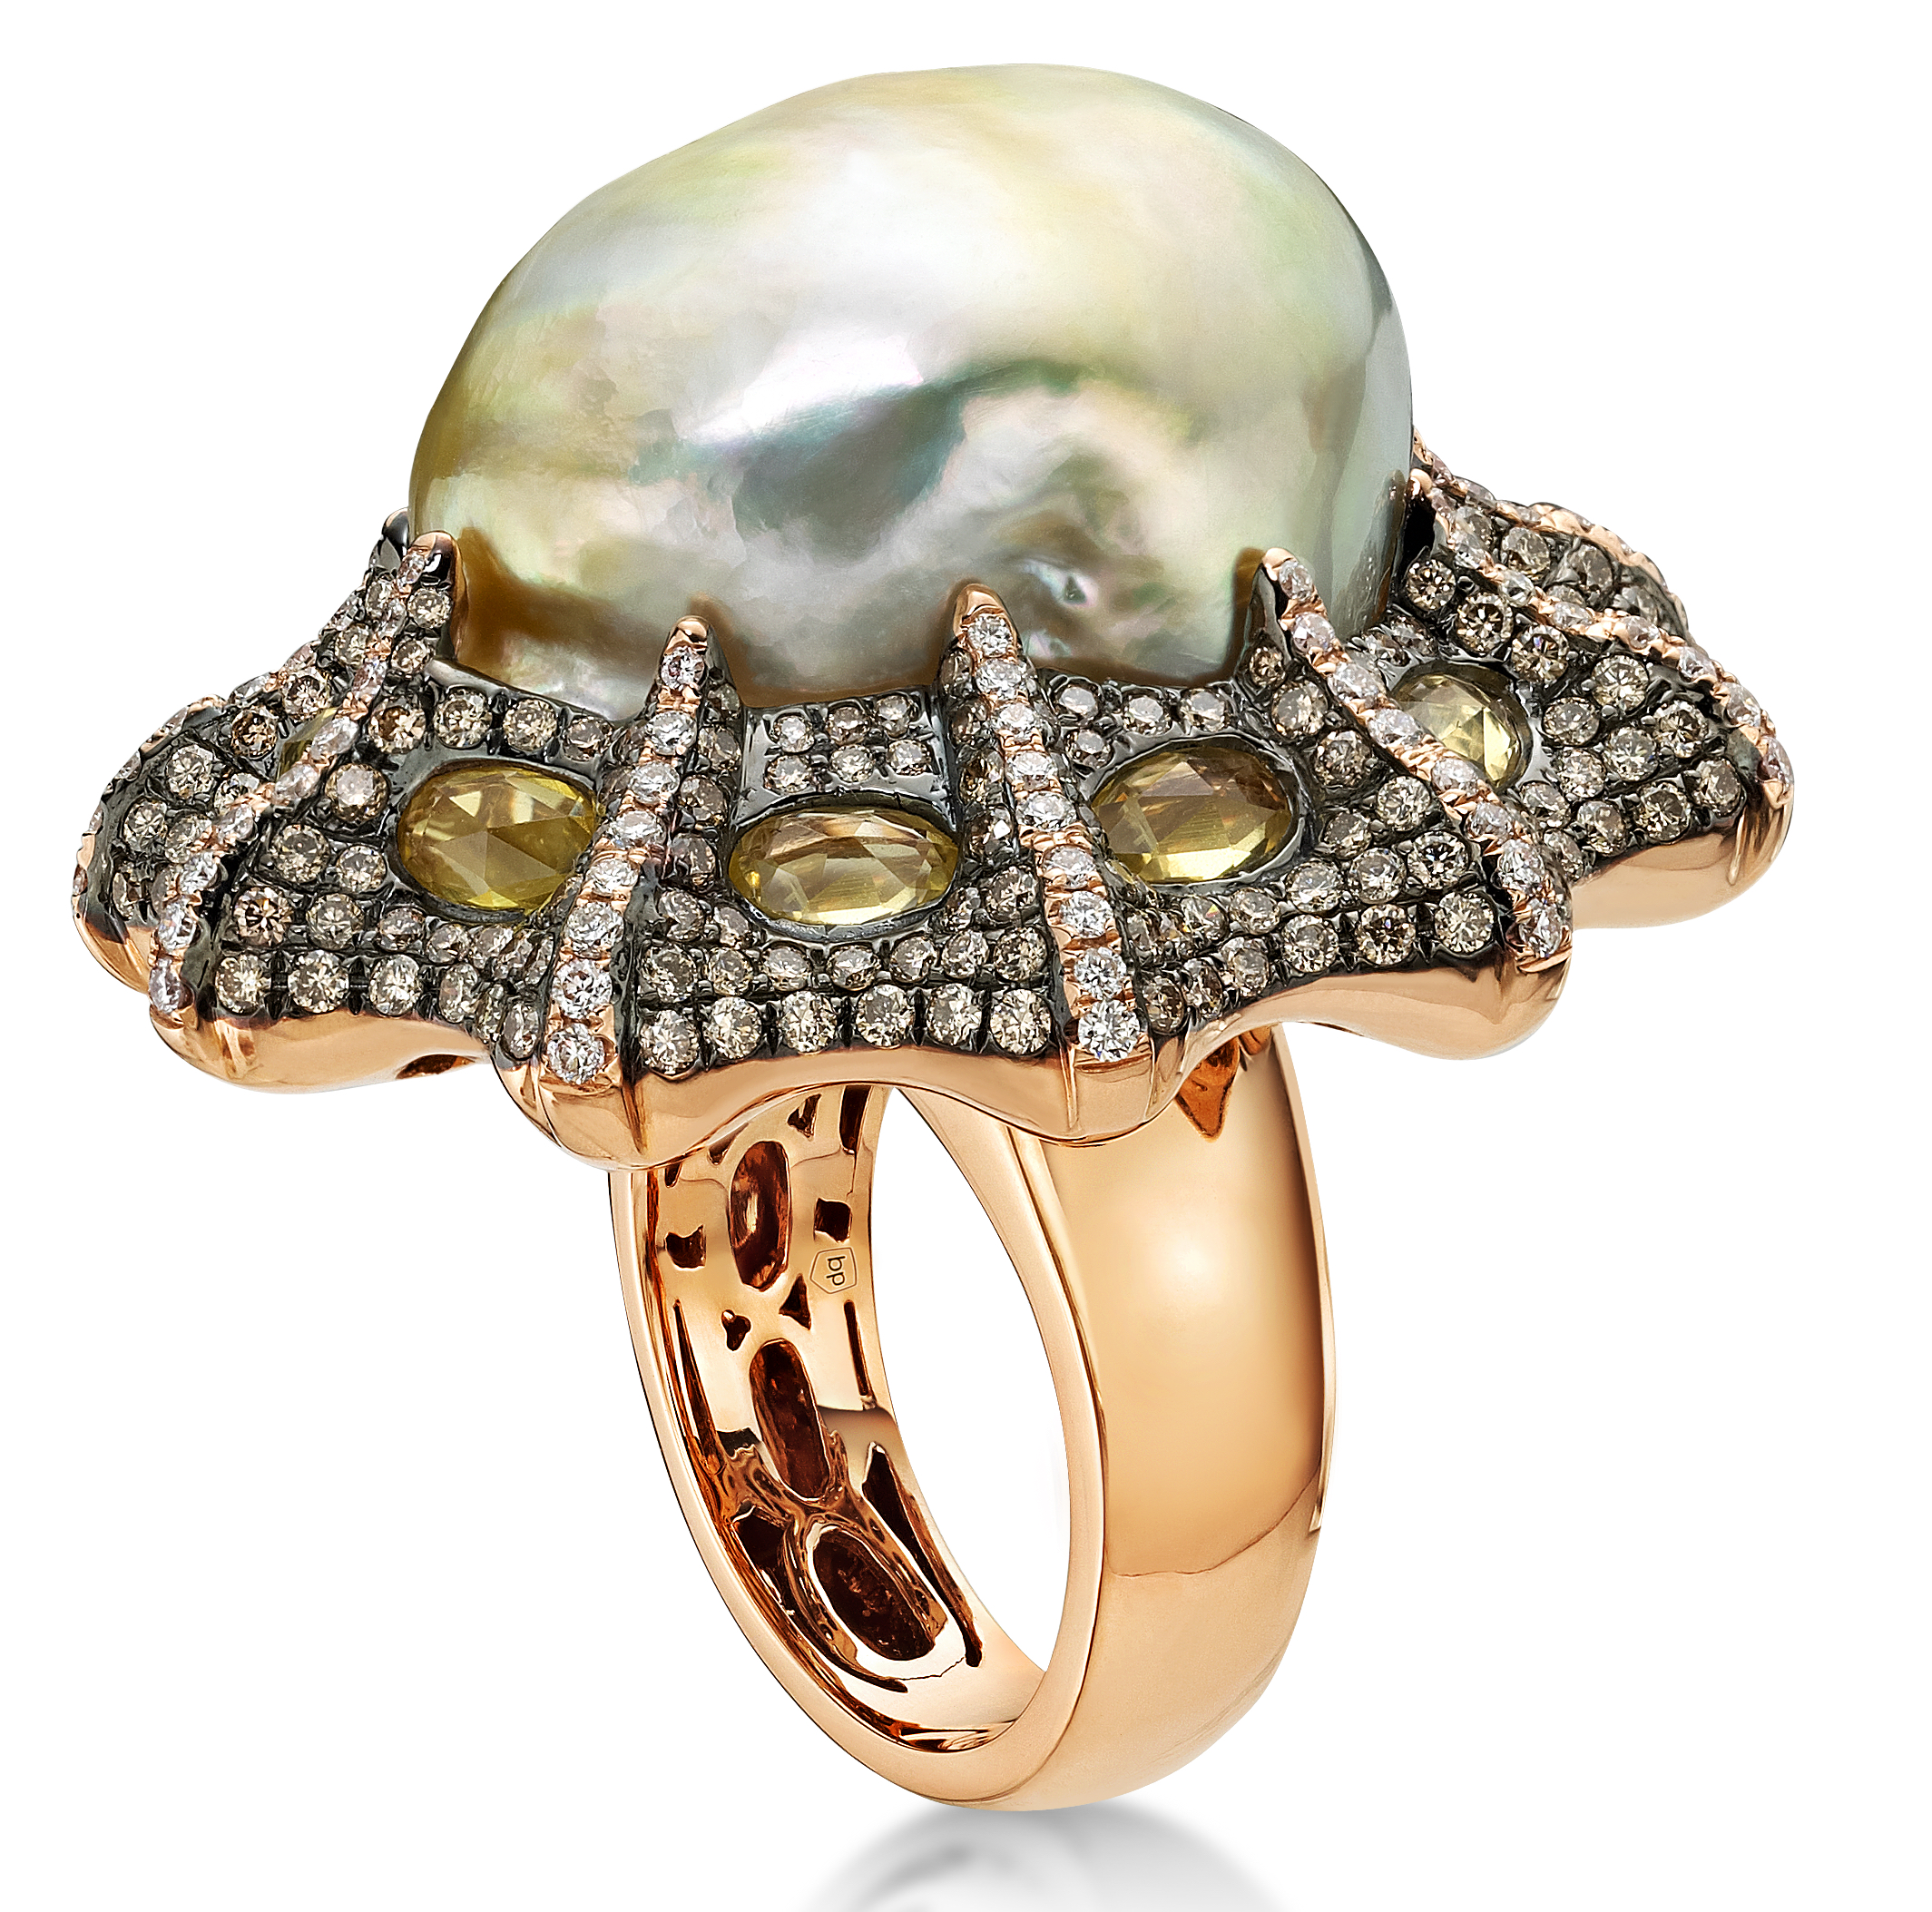 Belpearl baroque South Sea pearl ballerina ring | JCK On Your Market